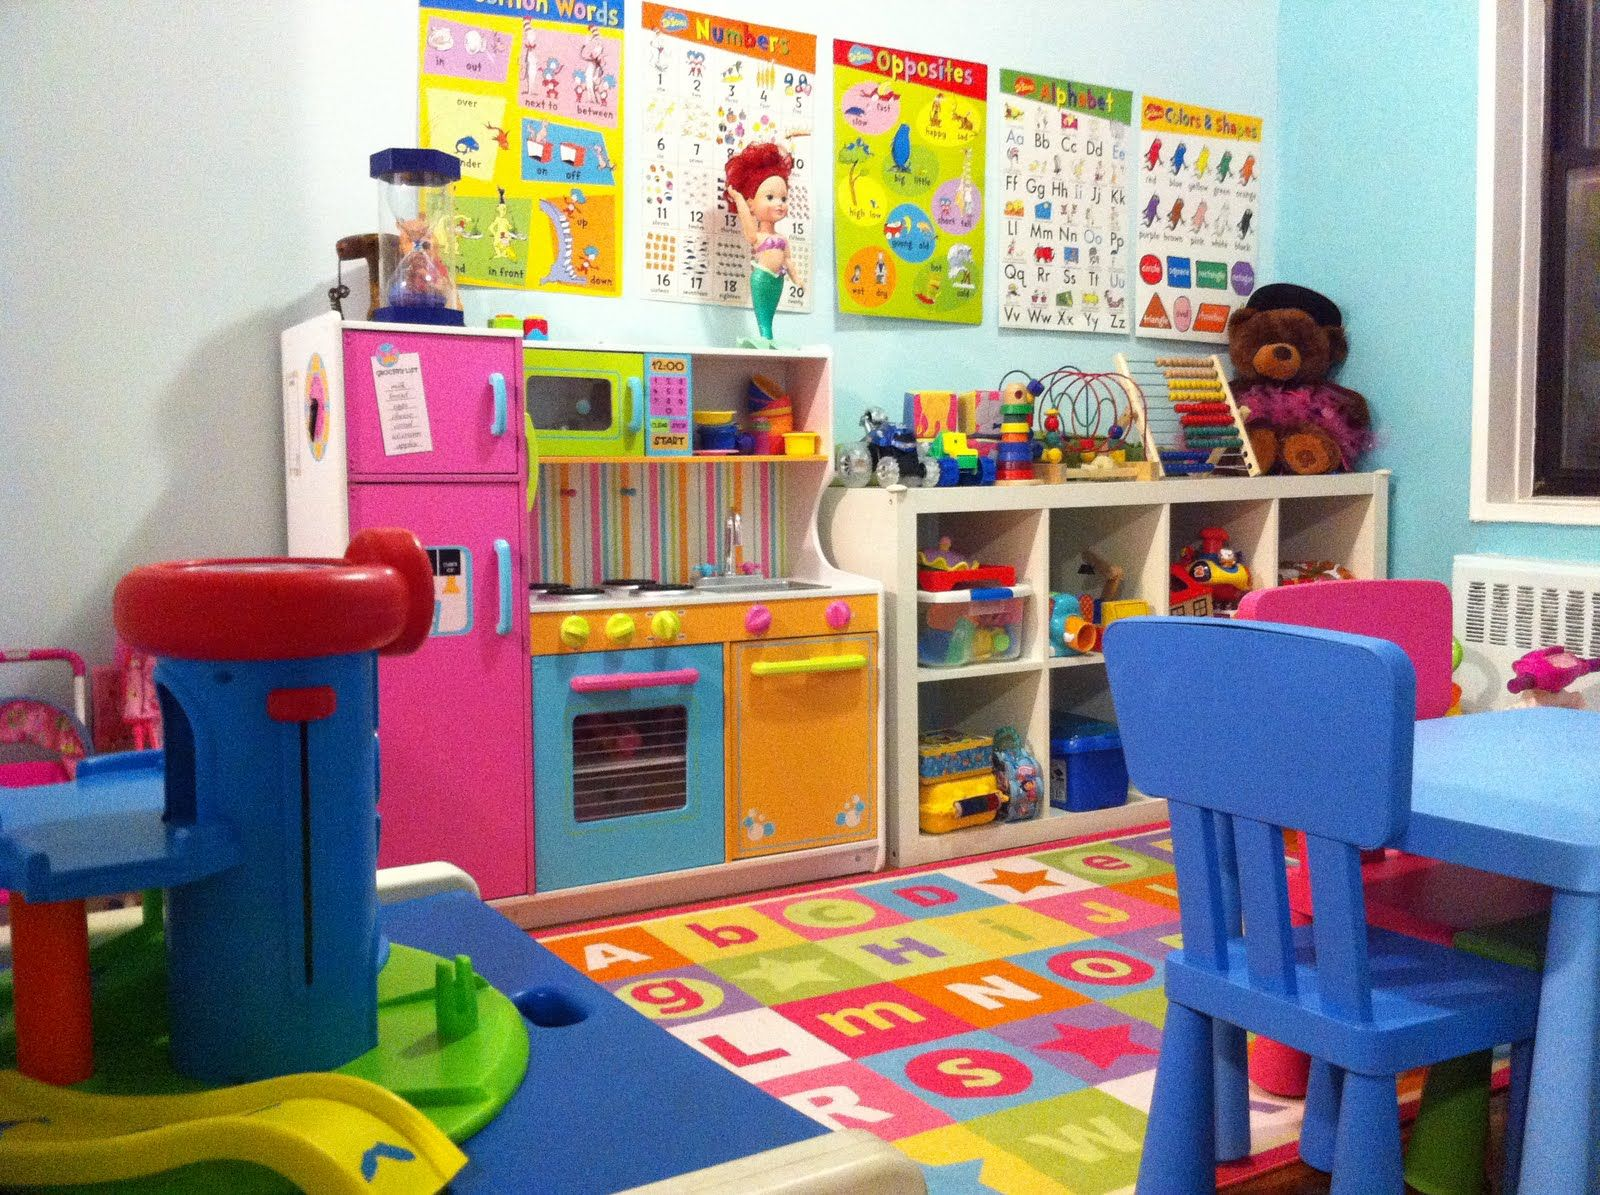 Nicole S Home Daycare Daycare Decor Daycare Setup Home Daycare